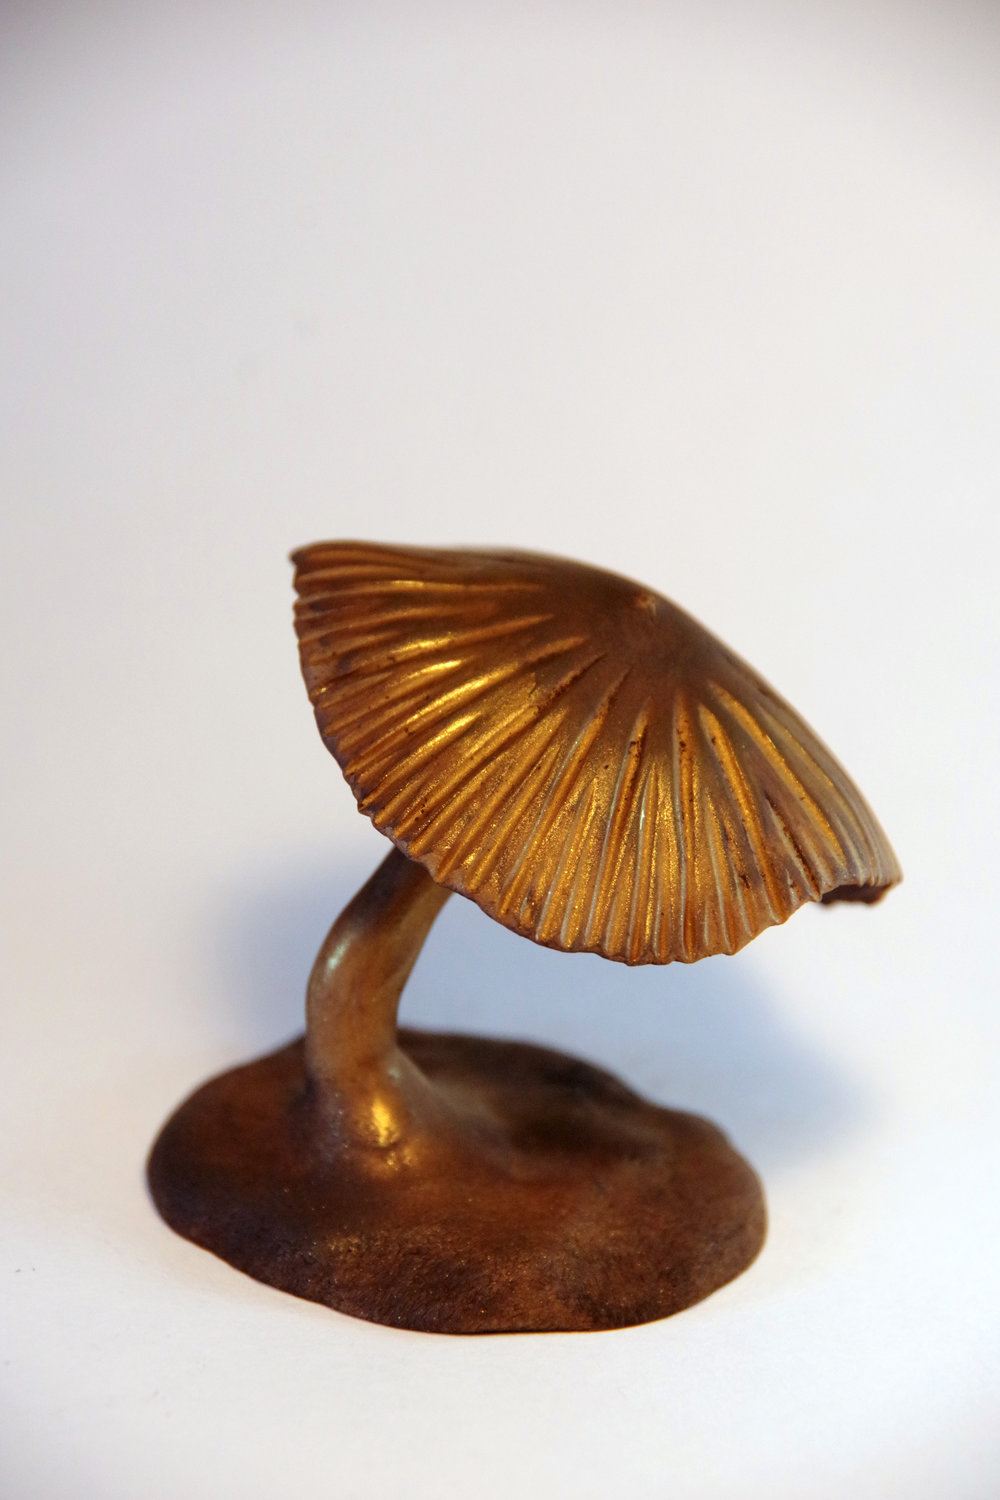 - This little guy is just a mushroom without a face, but he is awfully shiny